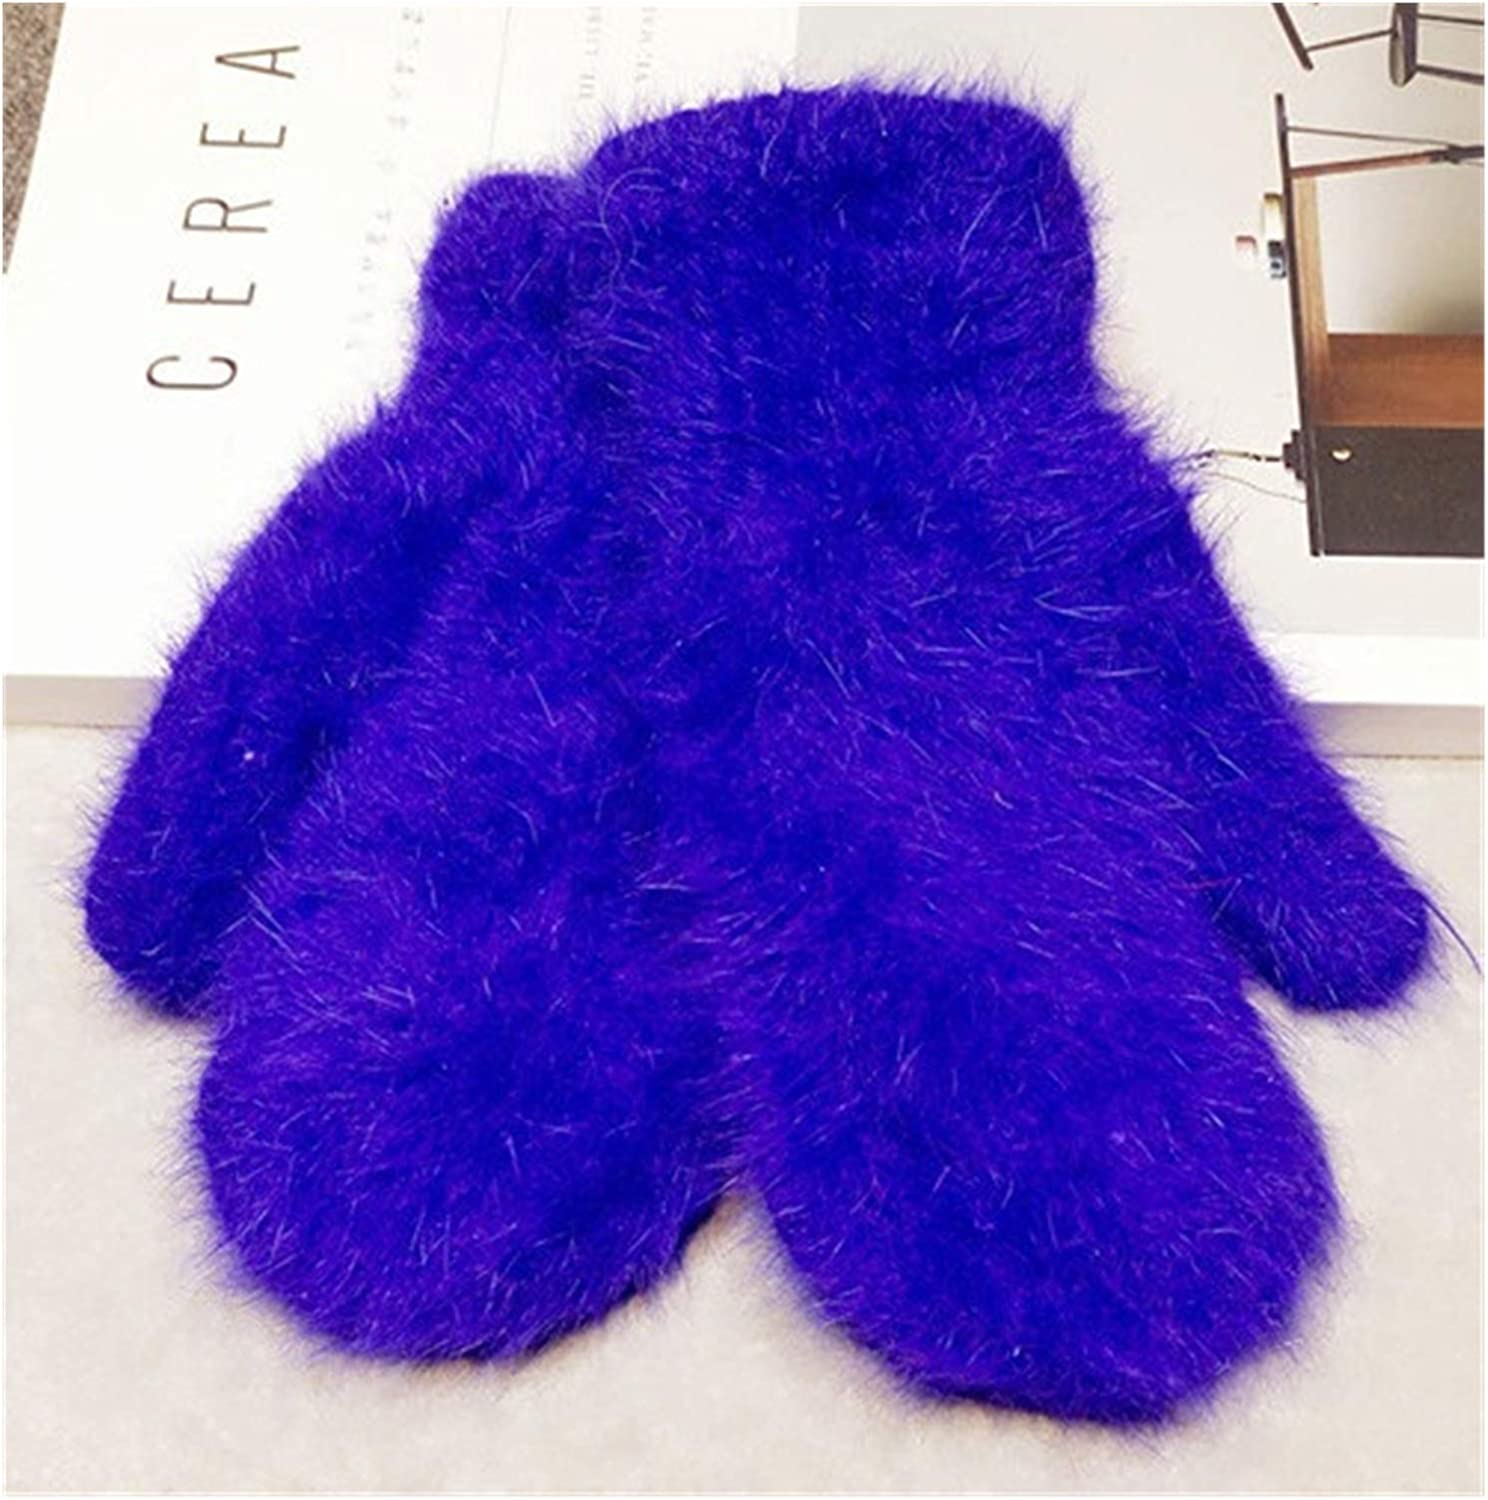 JBIVWW Winter Women Soft Warm Knit Gloves Fashion Lovely Warmer Girls' Candy Color Mittens Gloves (Color : 06, Gloves Size : One Size)